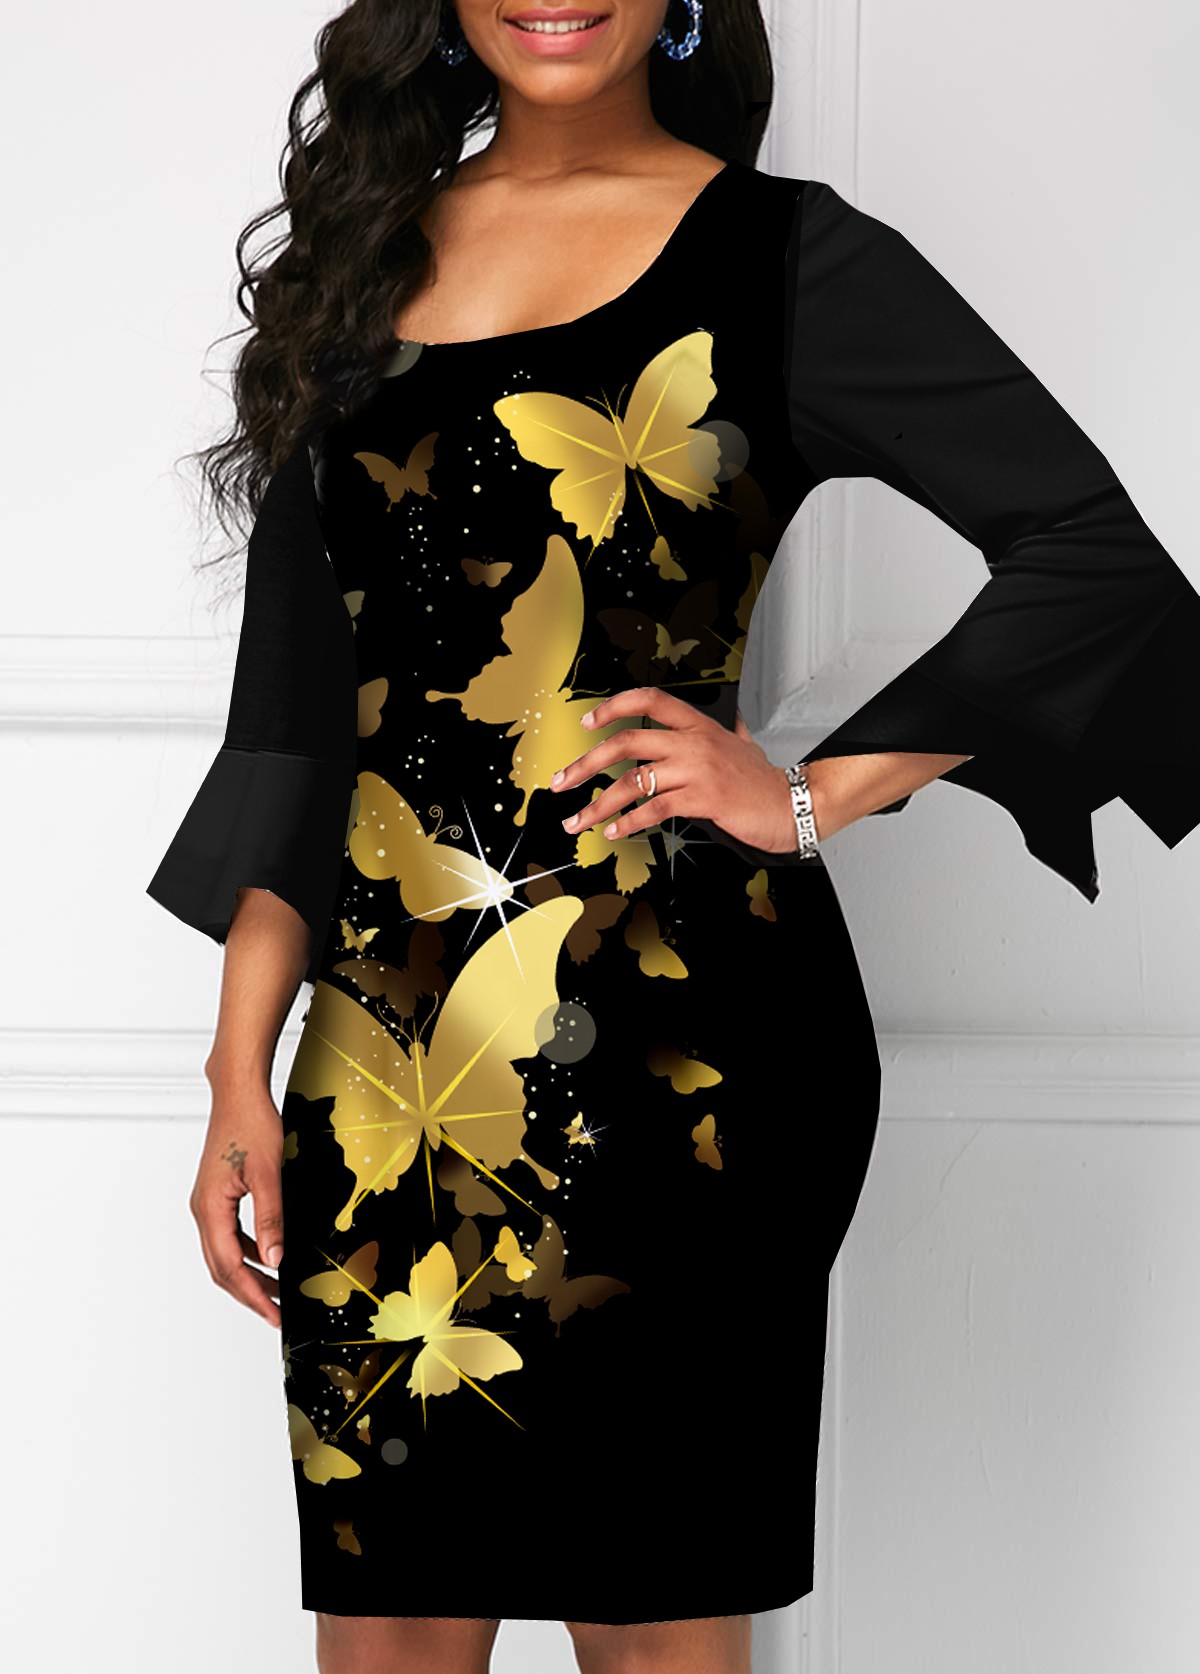 Butterfly Print Hanky Sleeve Square Collar Dress